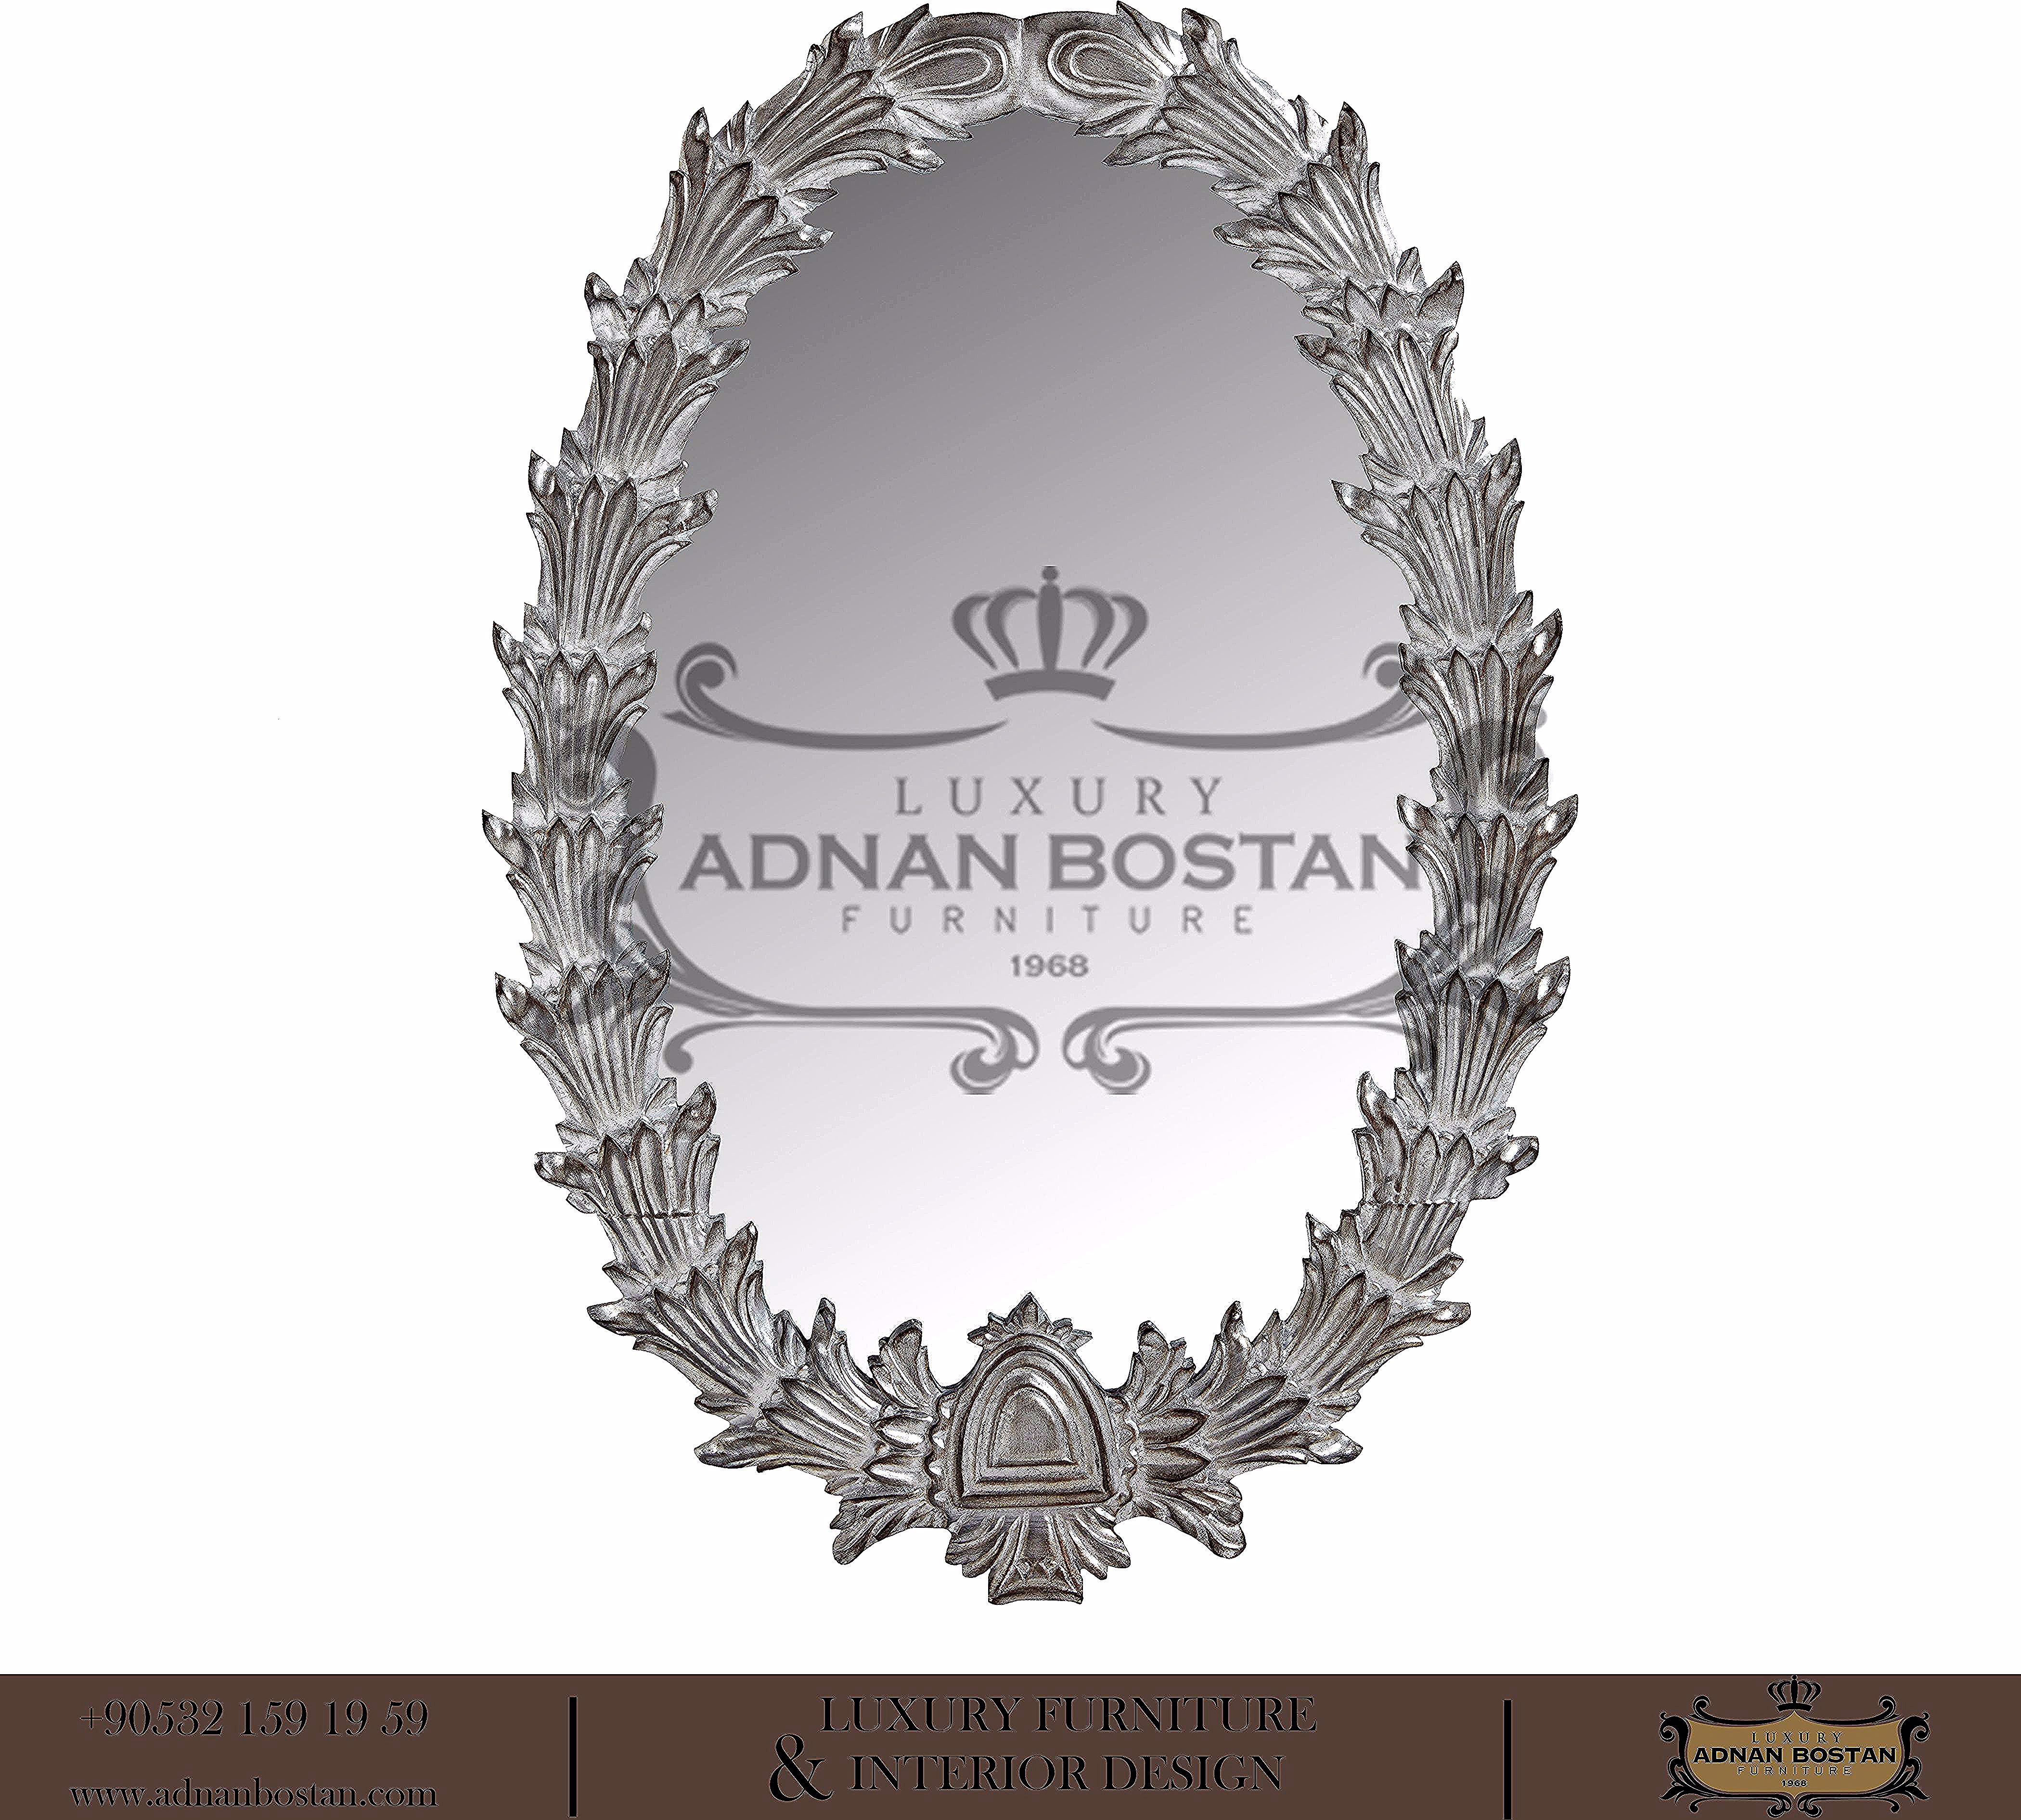 #AdnanBostanFurnitureAndDecorations #LuxuryFurniture #InteriorDesign #Mobilyamüzesi #Decor #Dubai #saudiarabia #Qatar #Russia #egypt #iran #kuwait #dekorasyon #mobilya #interiordesign #decoration #home #furniture #luxury #dekor #tasarım #mimar #design #interior #dekorasyonfikirleri #architecture #decor #içmimar #içmimarlık #tasarim #ankara #dresuar #evdekorasyonu #aksesuar #decoration #dekorasyonfikirleri #homedecor #interiordesign #homedecoratıon #desıgn #mobilyatasarım #furnıture #Speciallife